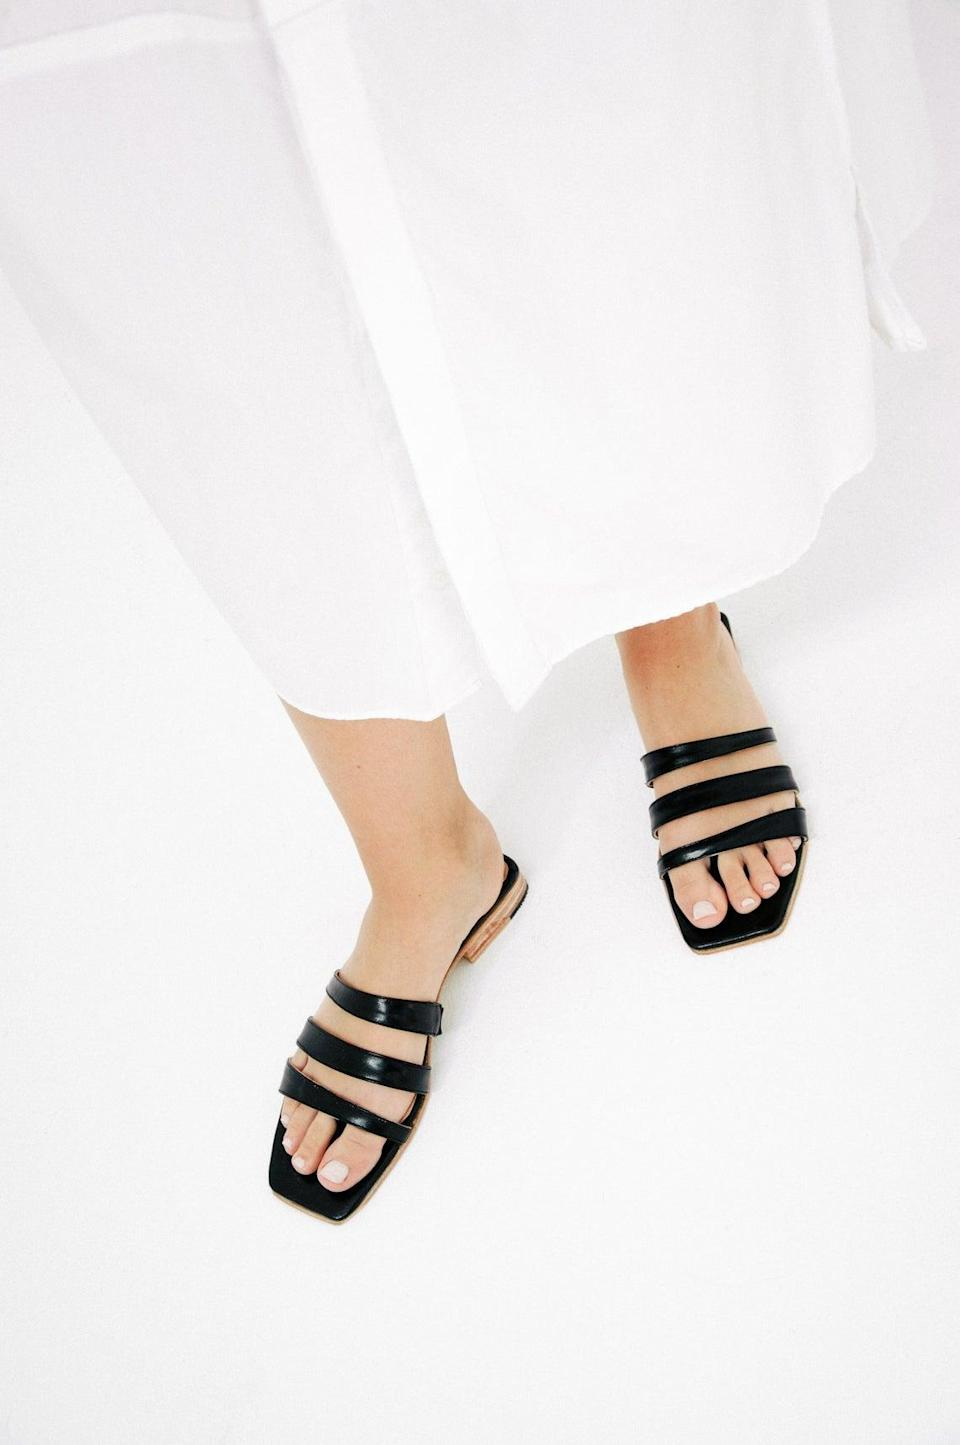 """<br><br><strong>Zou Xou</strong> Lagos Sandal in Black, $, available at <a href=""""https://go.skimresources.com/?id=30283X879131&url=https%3A%2F%2Fwww.etsy.com%2Flisting%2F822505411%2Flagos-sandal-in-black"""" rel=""""nofollow noopener"""" target=""""_blank"""" data-ylk=""""slk:Etsy"""" class=""""link rapid-noclick-resp"""">Etsy</a>"""